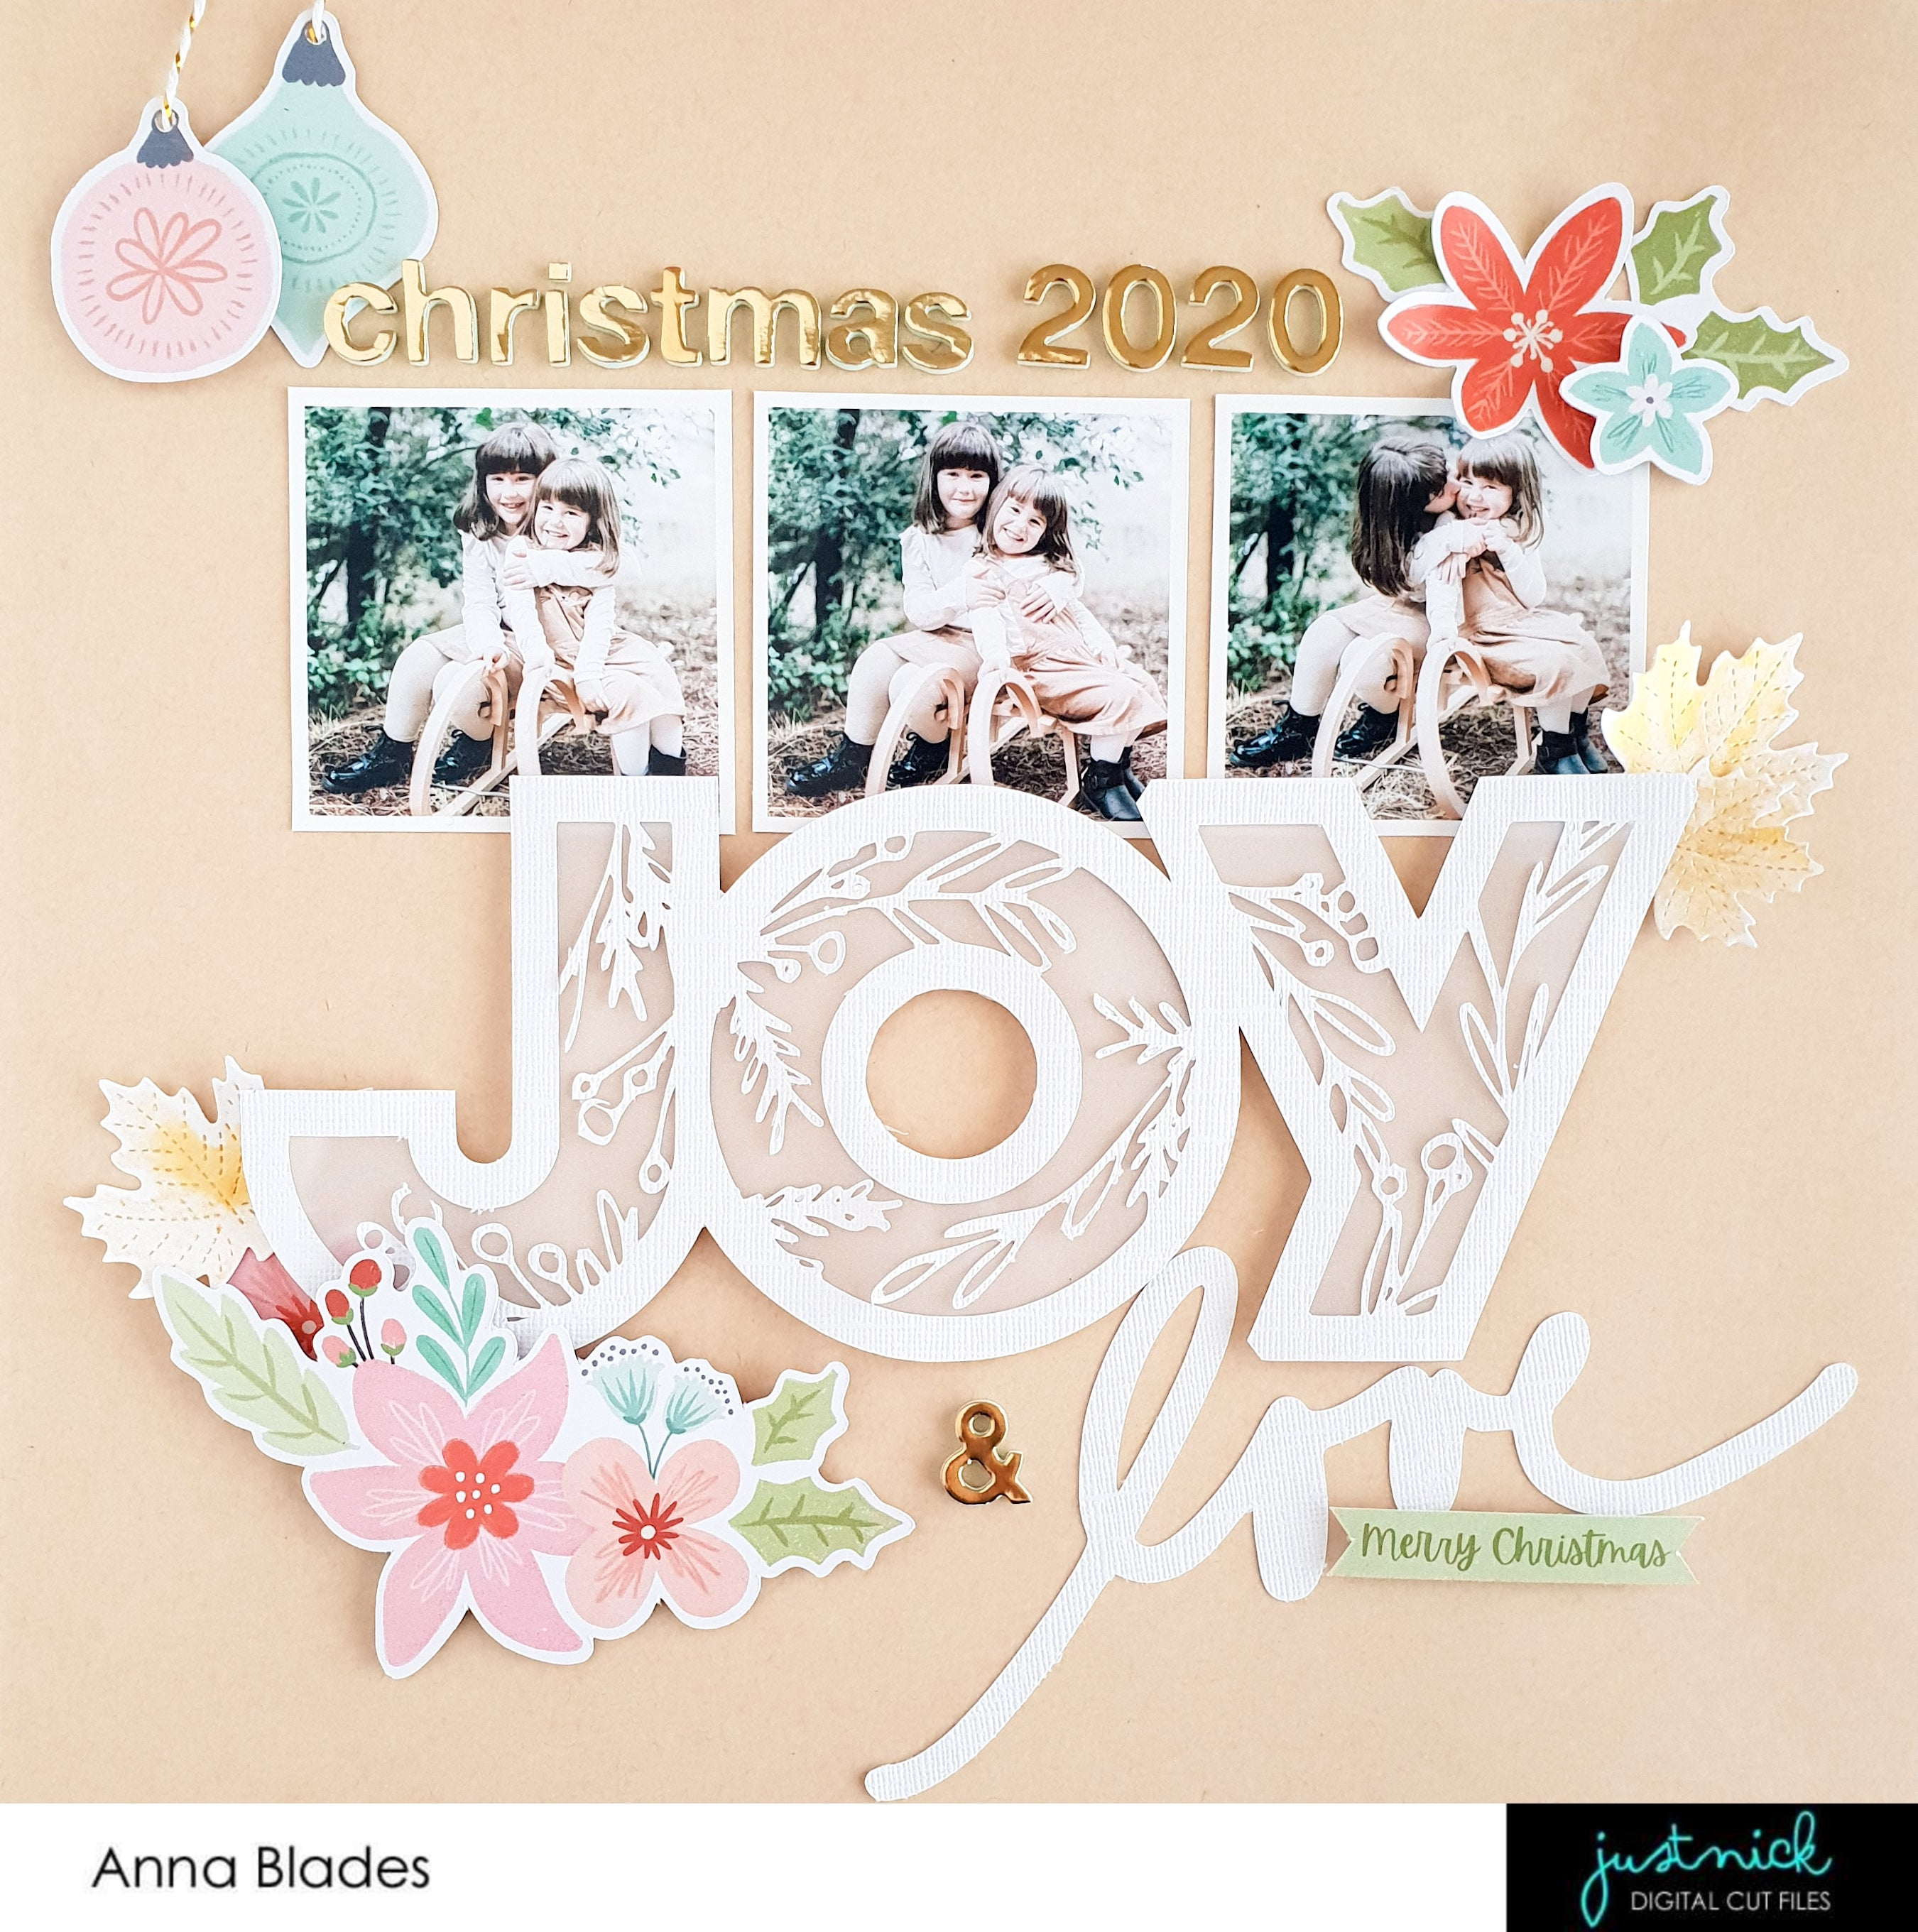 Fortunate Title Digital Cut File perfect for all Paper crafting Card making Scrapbooking Home Decor projects.